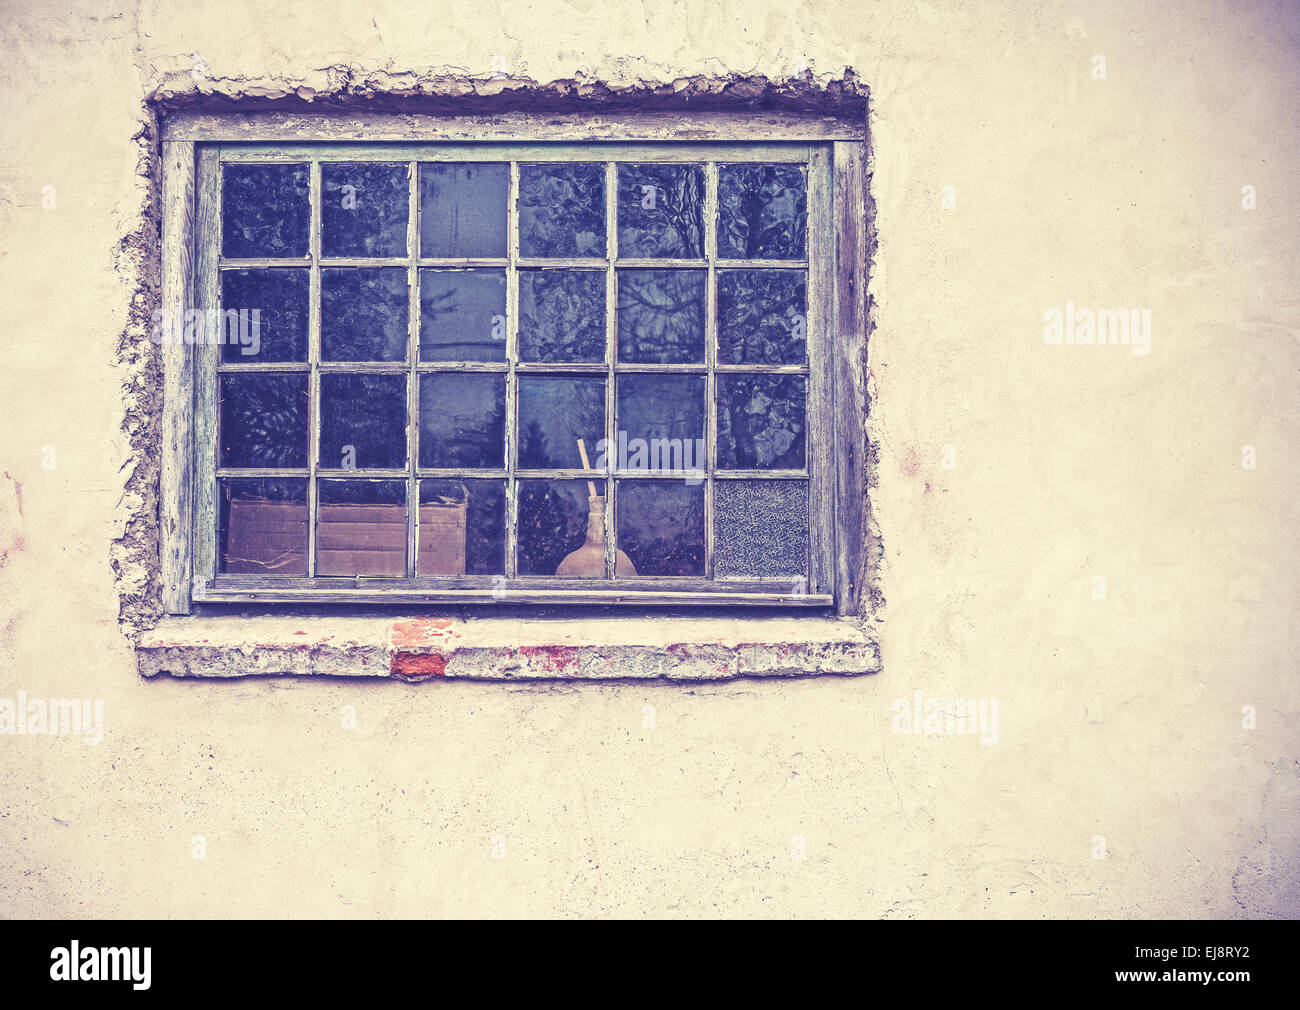 Old grungy window on an old dirty wall, retro filtered. - Stock Image